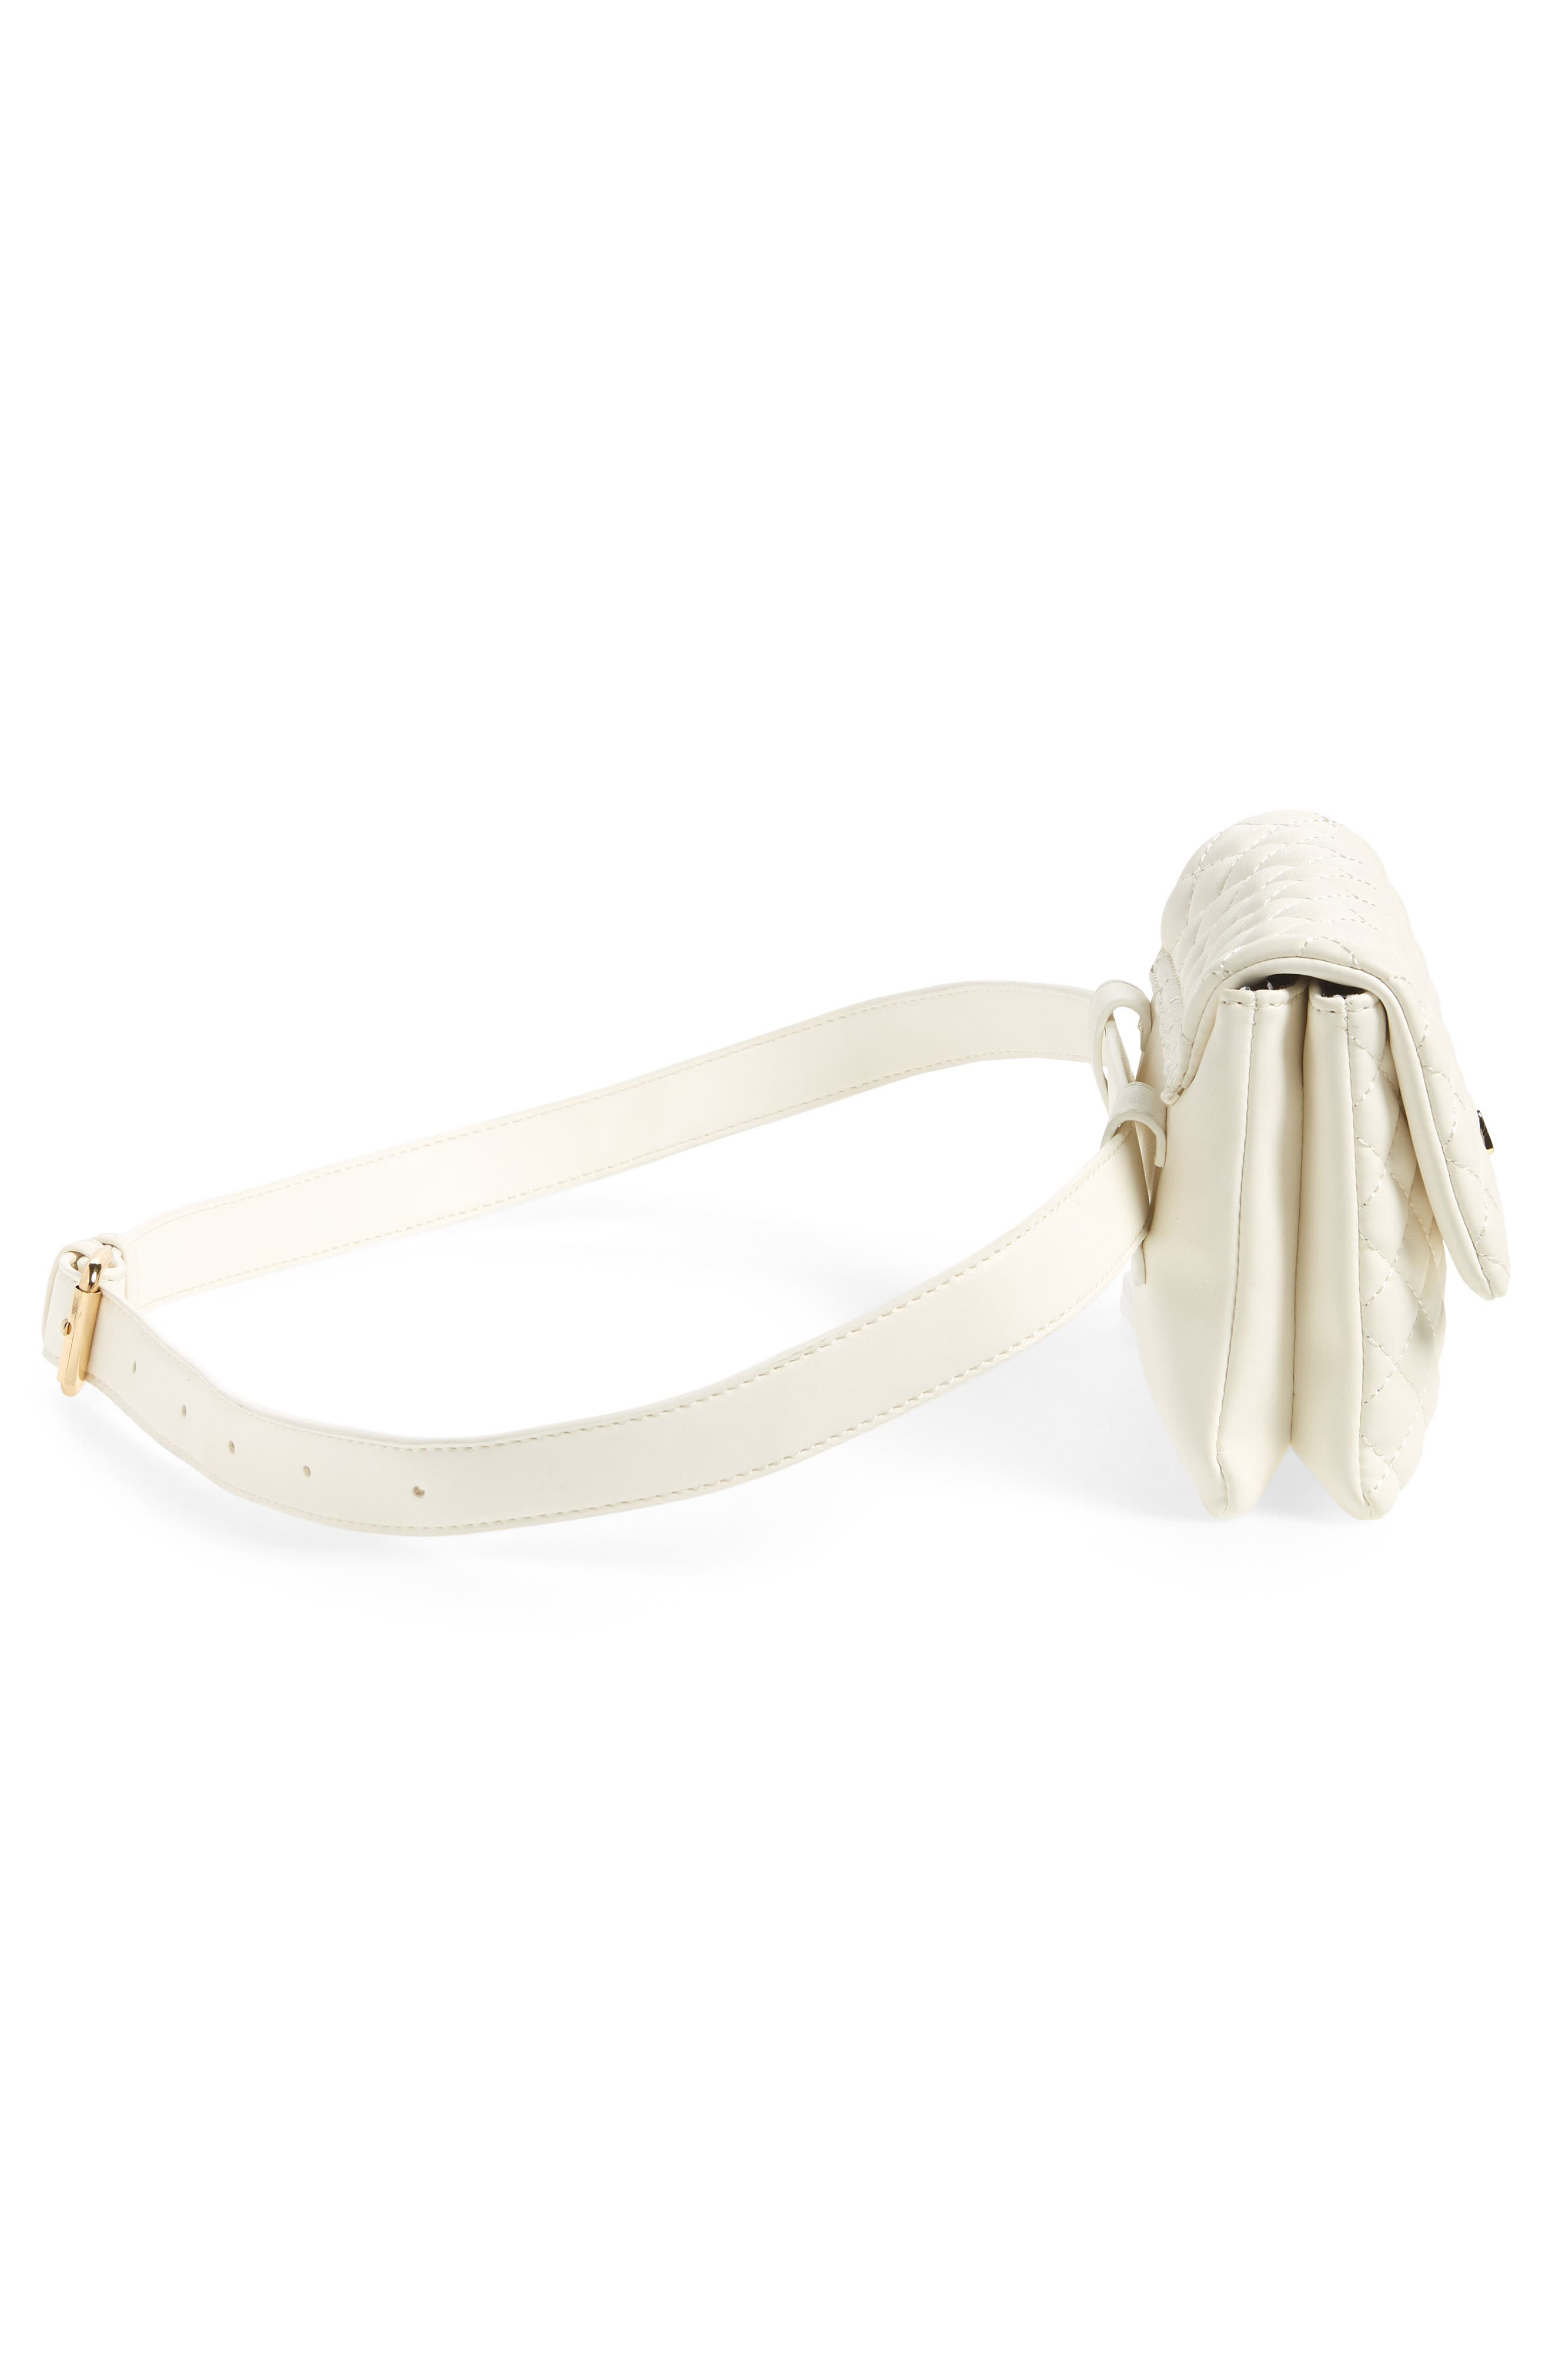 Mali + Lili Quilted Vegan Leather Convertible Belt Bag,                             Alternate thumbnail 7, color,                             WHITE